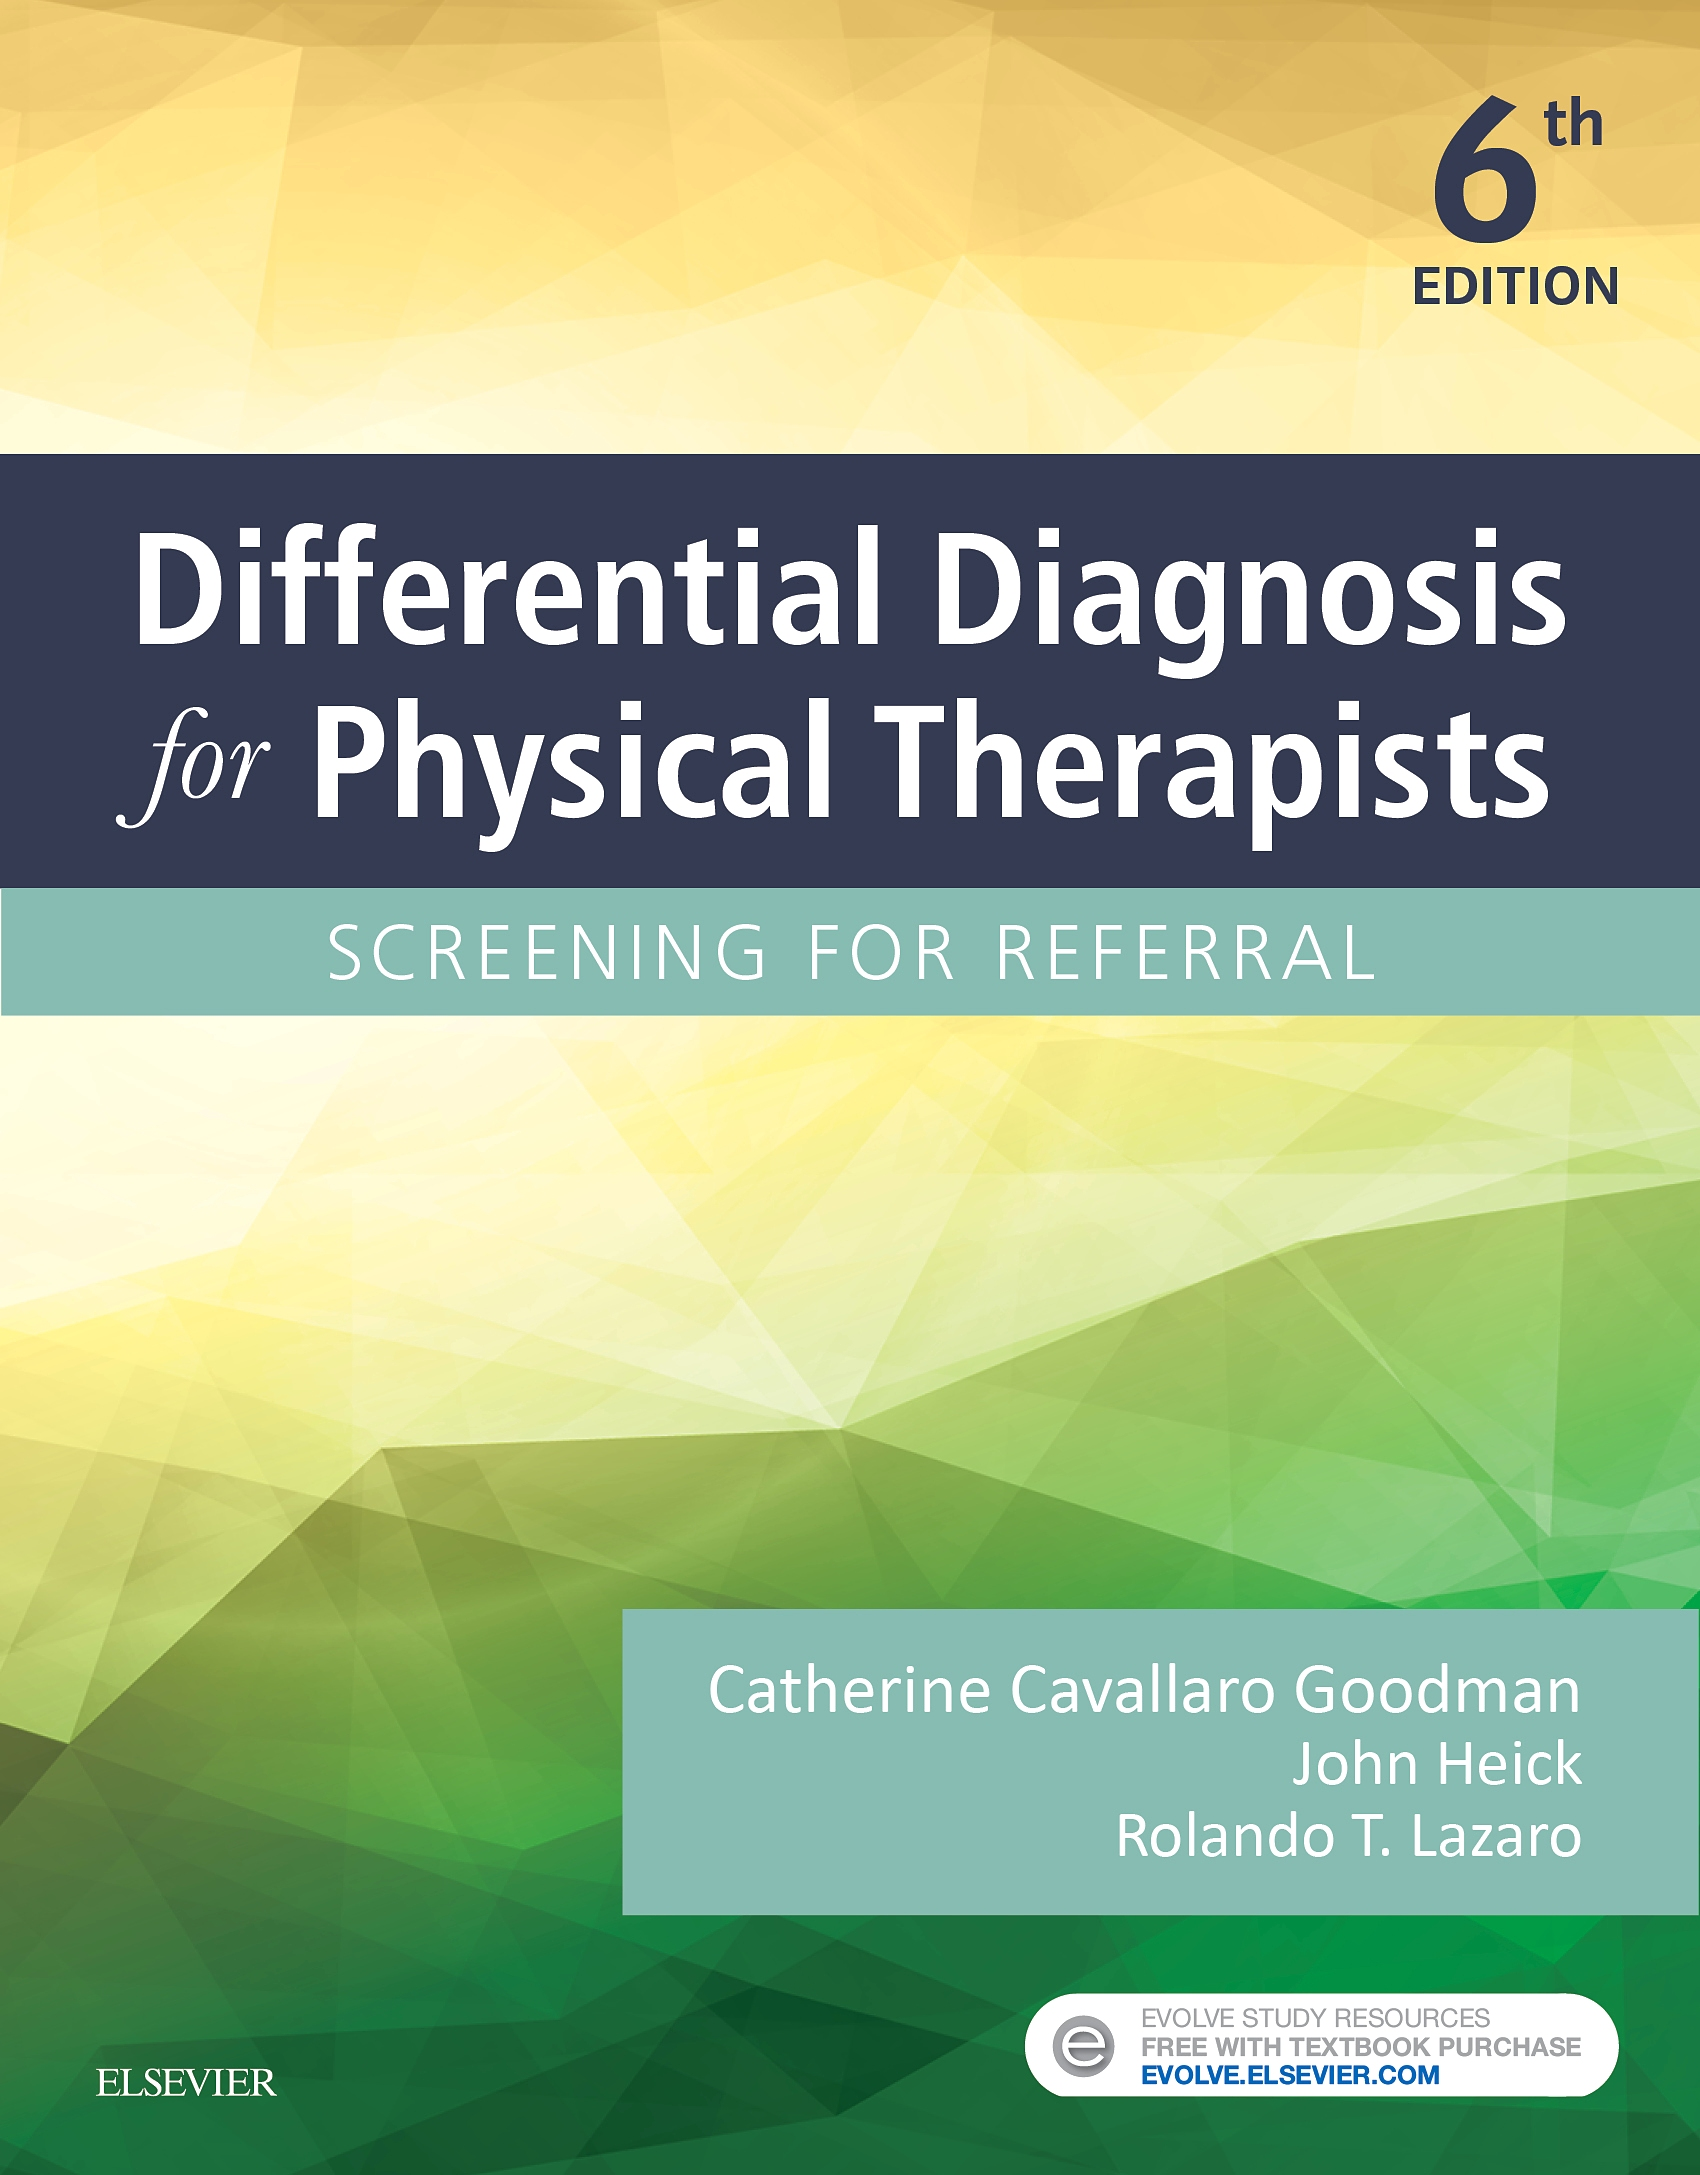 Evolve Resources for Differential Diagnosis for Physical Therapists, 6th Edition